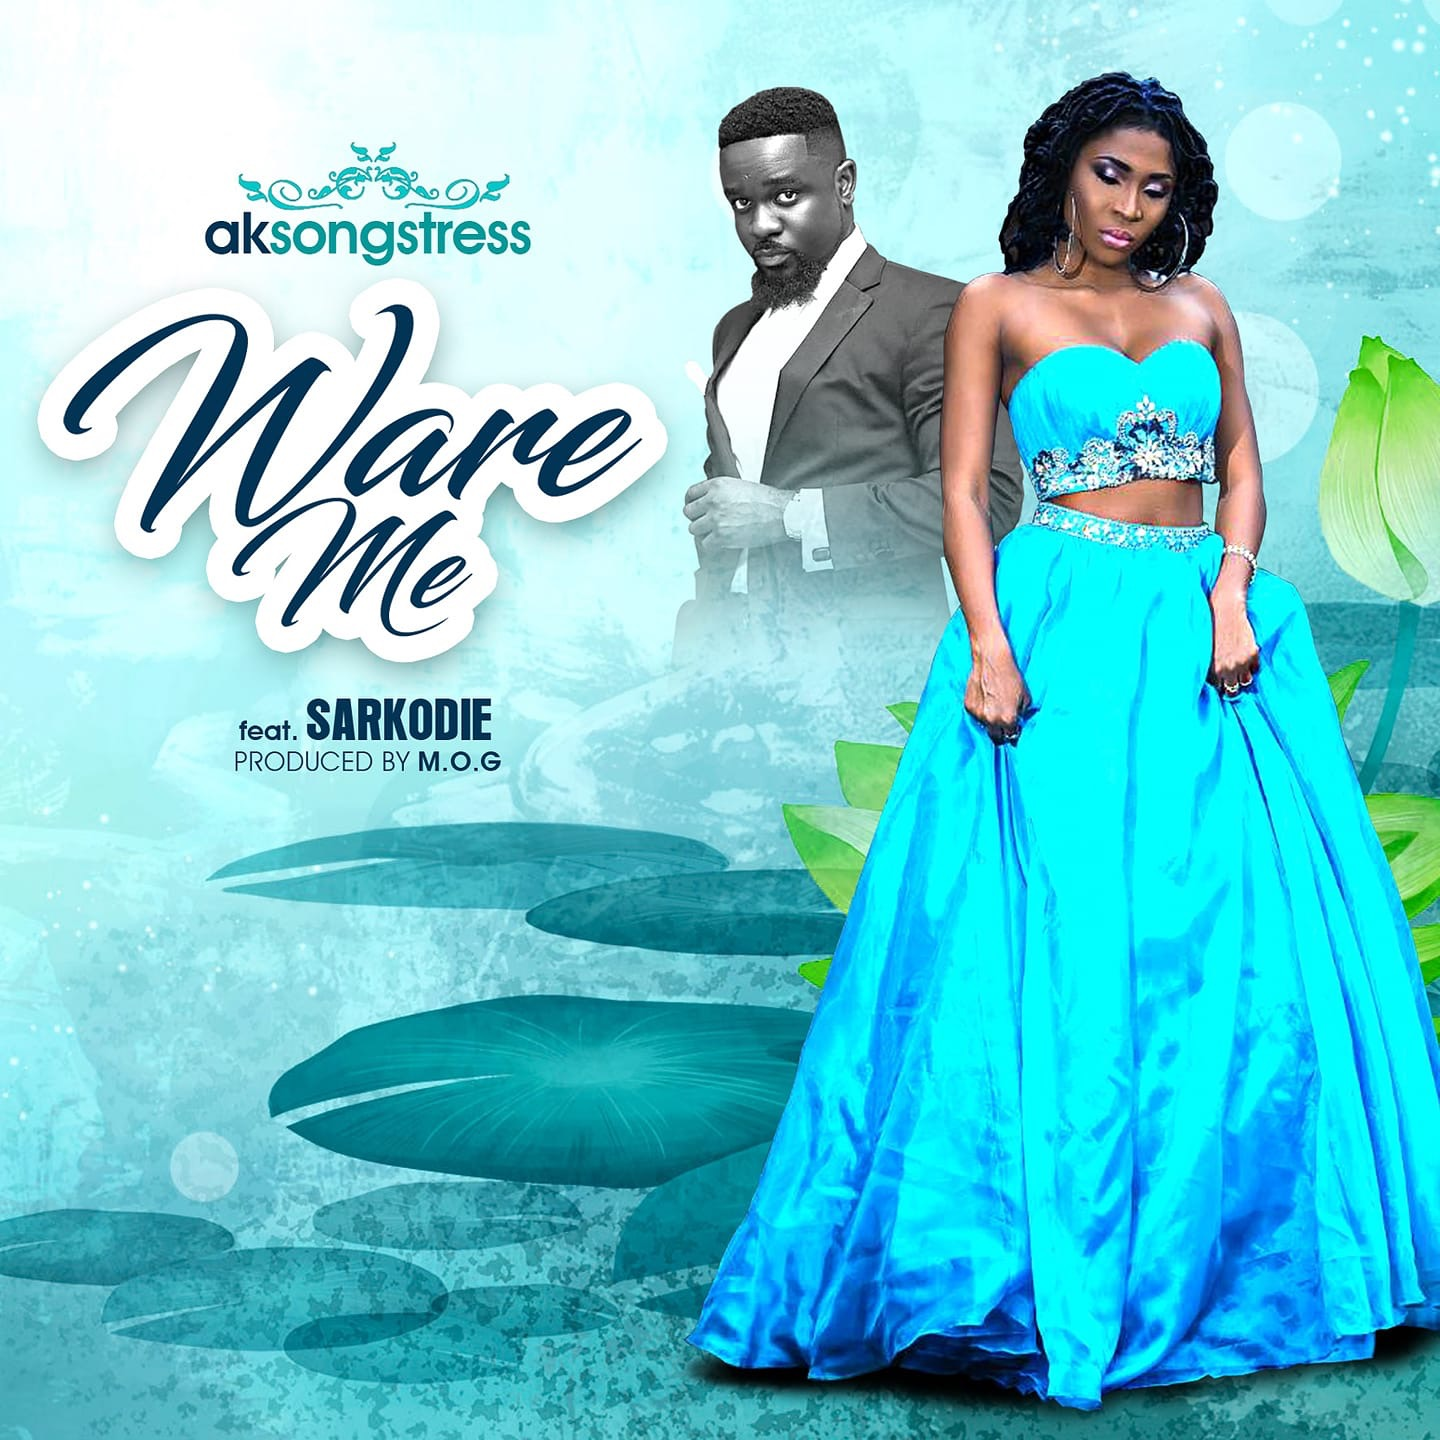 Check Out AK Songstress new song Ware Me ft Sarkodie